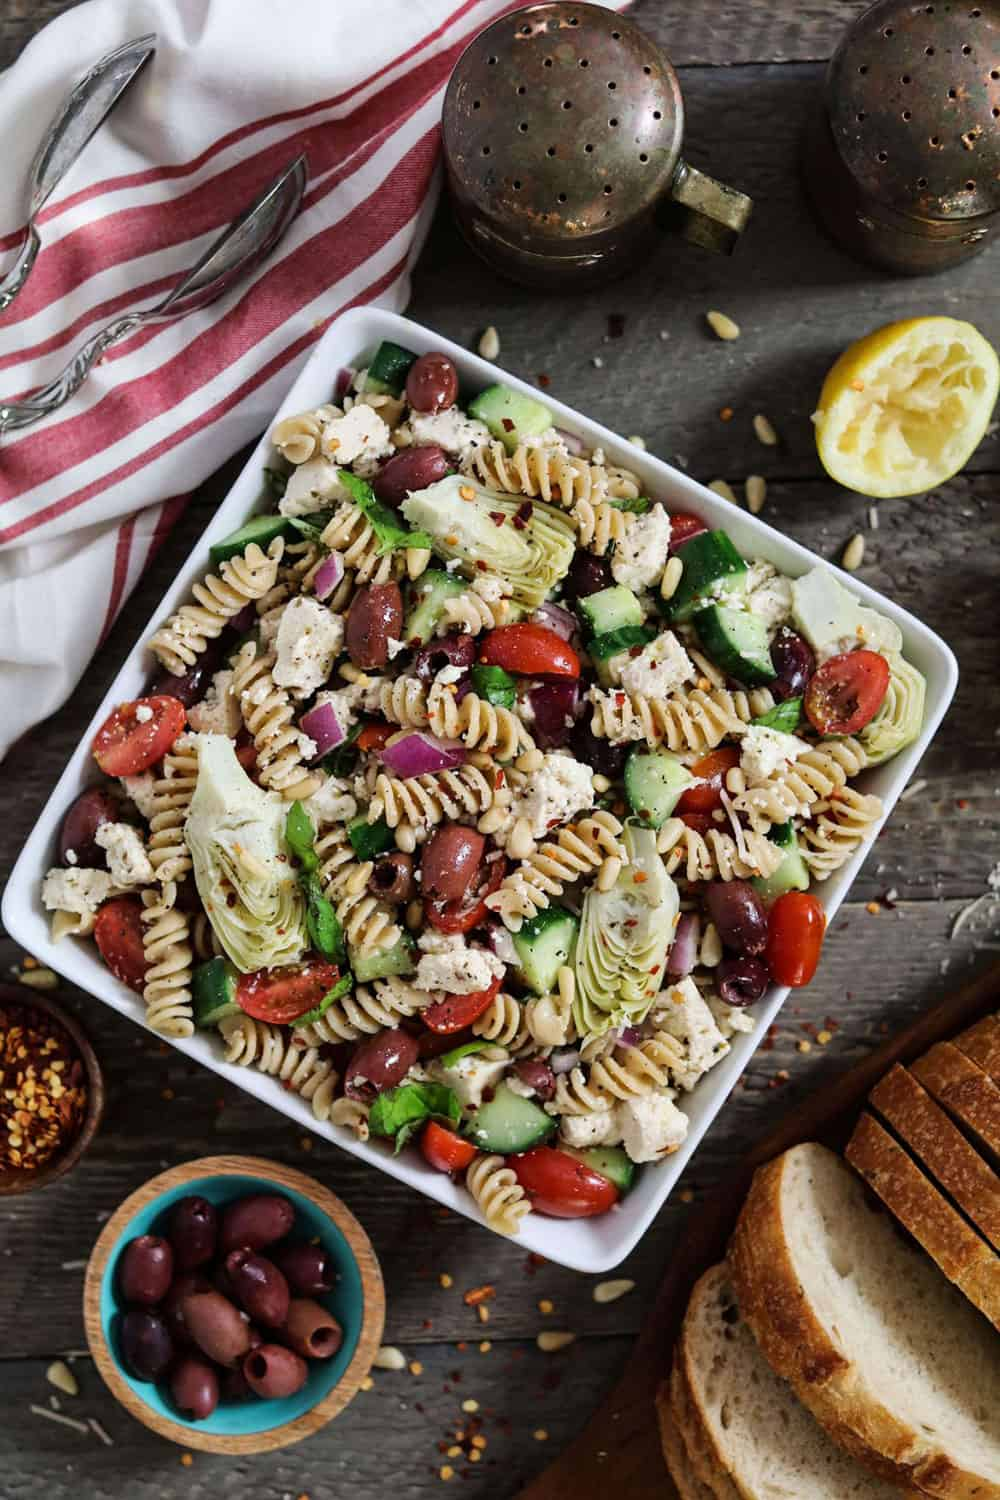 Mediterranean Pasta Salad with artichokes, tomatoes, olives